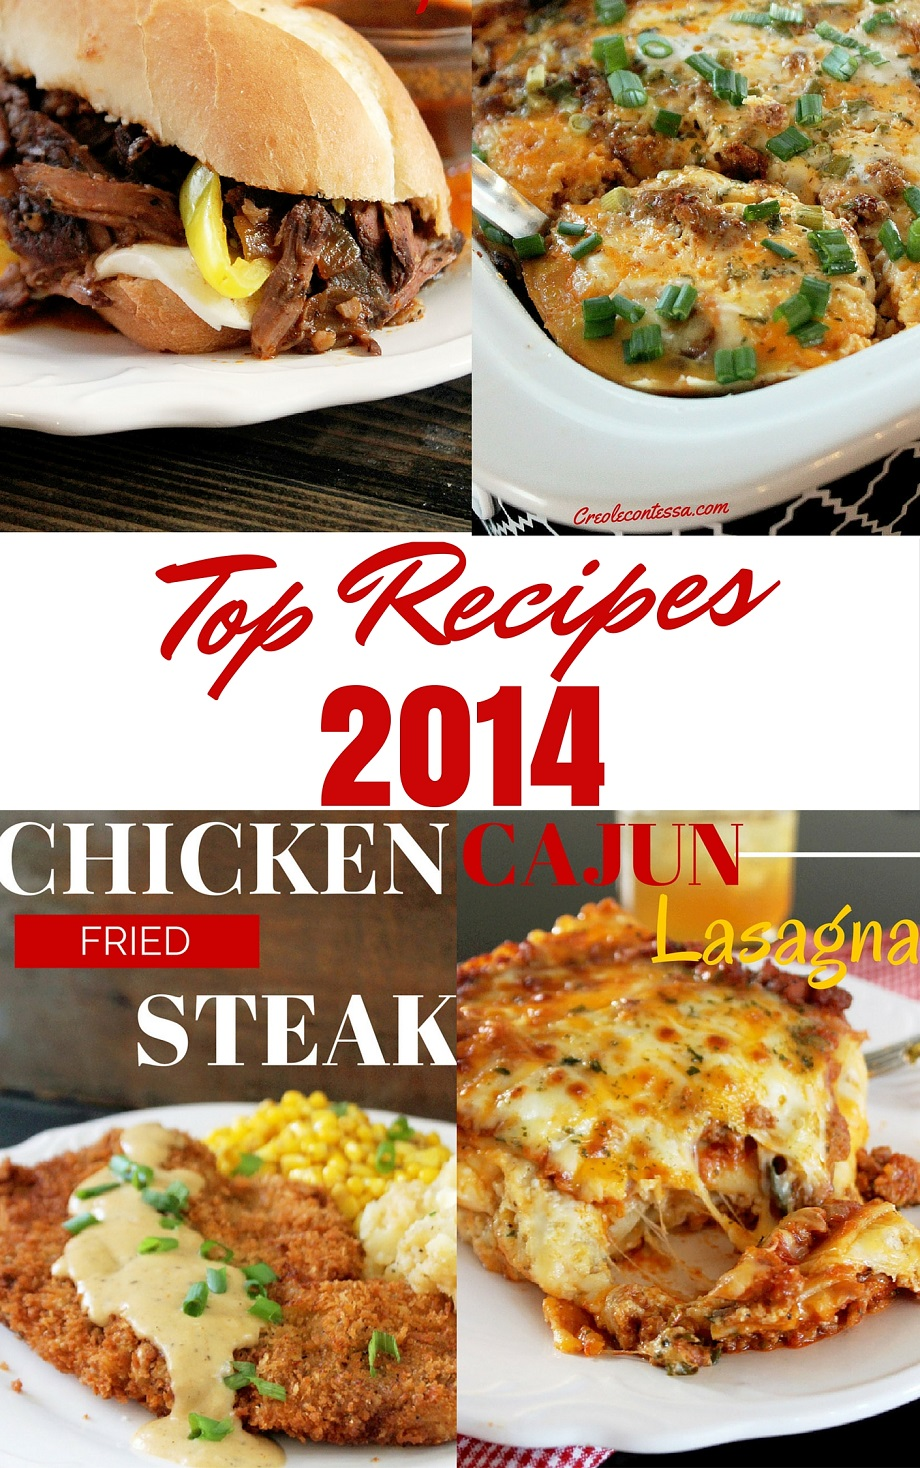 Top Recipes 2014-Creole Contessa